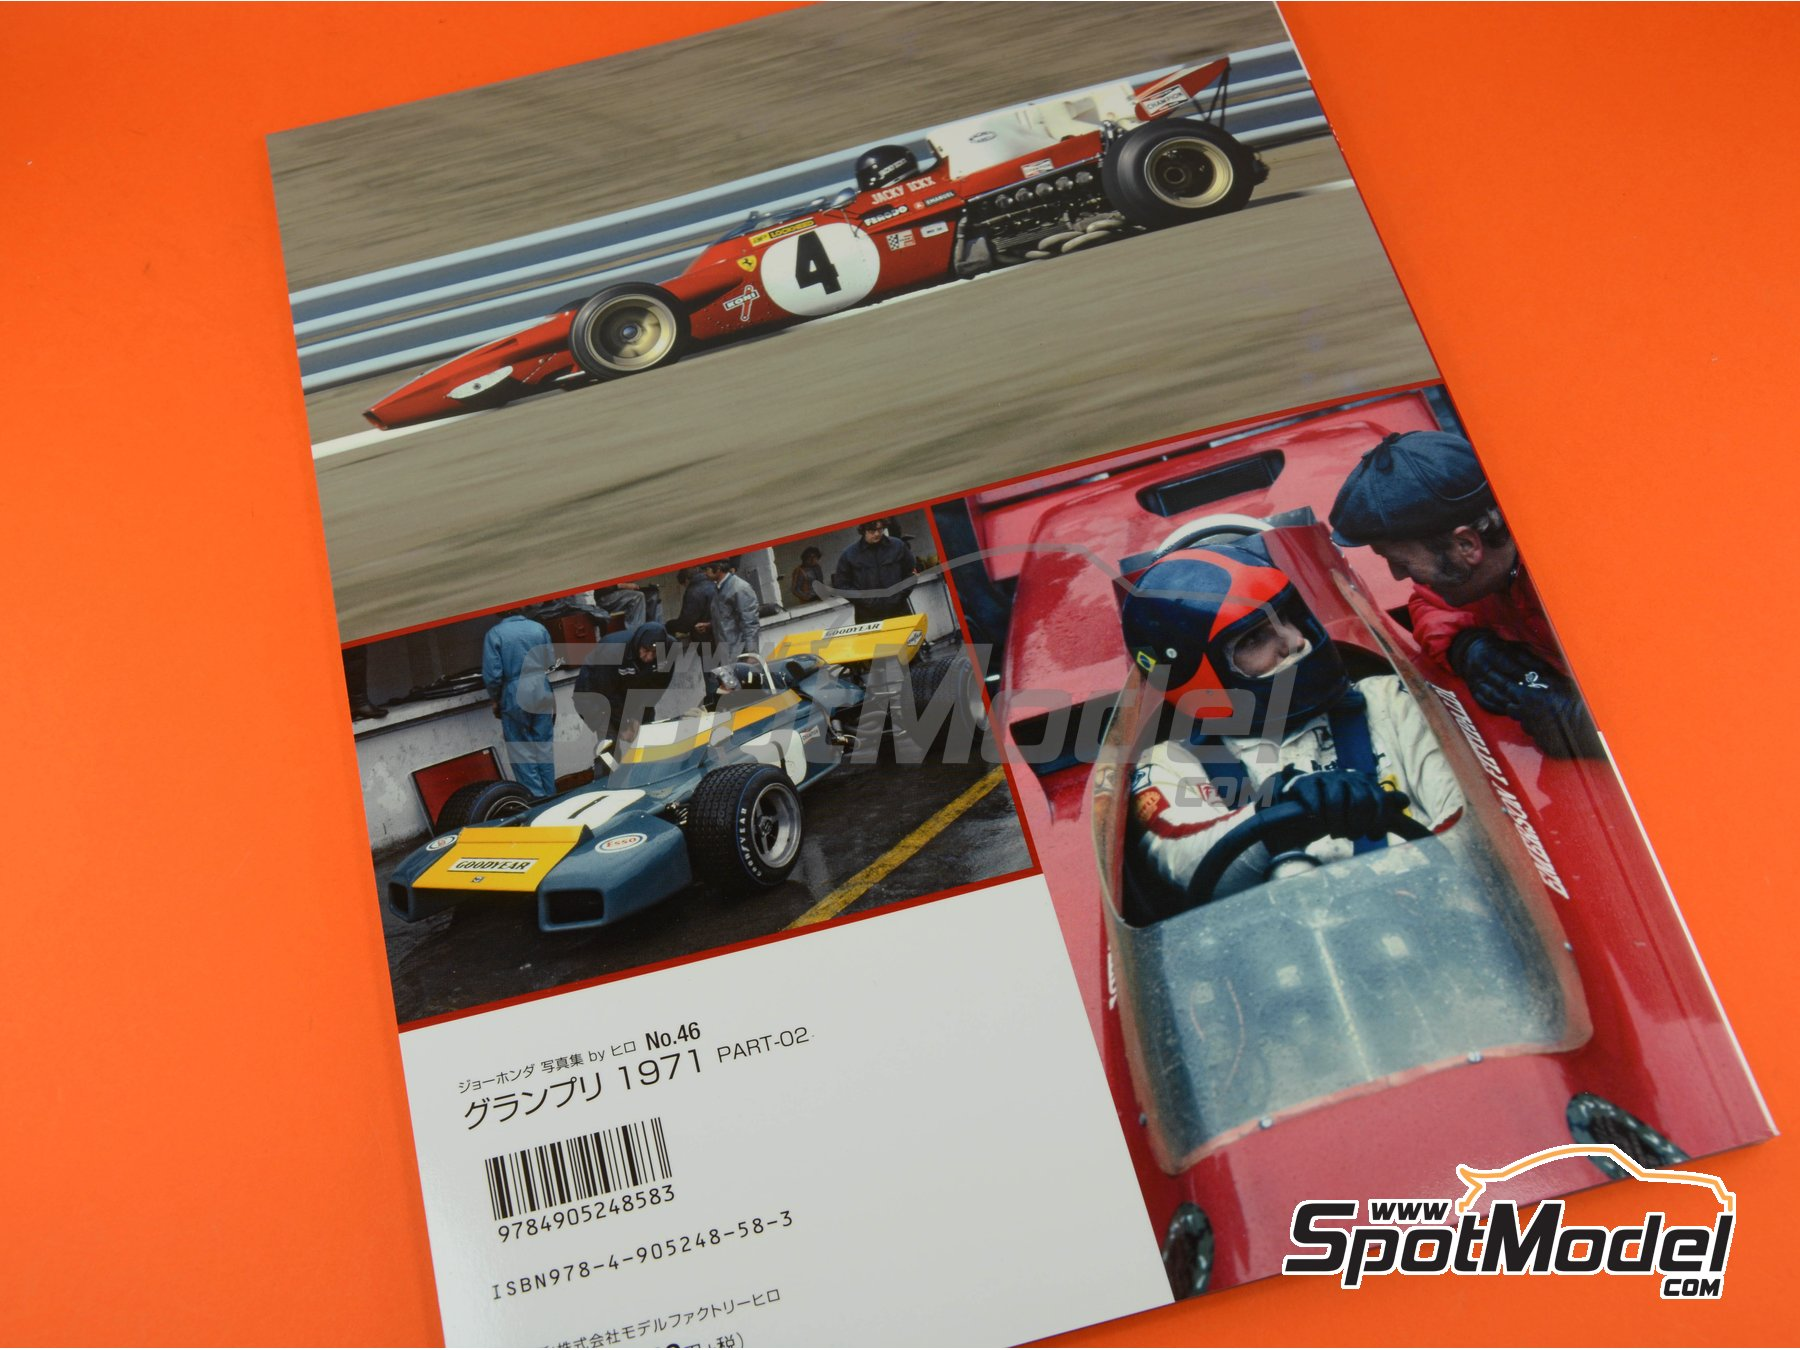 Image 6: Joe Honda Racing Pictorial Series: Grand Prix, parte 2 -  1971 | Libro de referencia fabricado por Model Factory Hiro (ref. MFH-JH46)